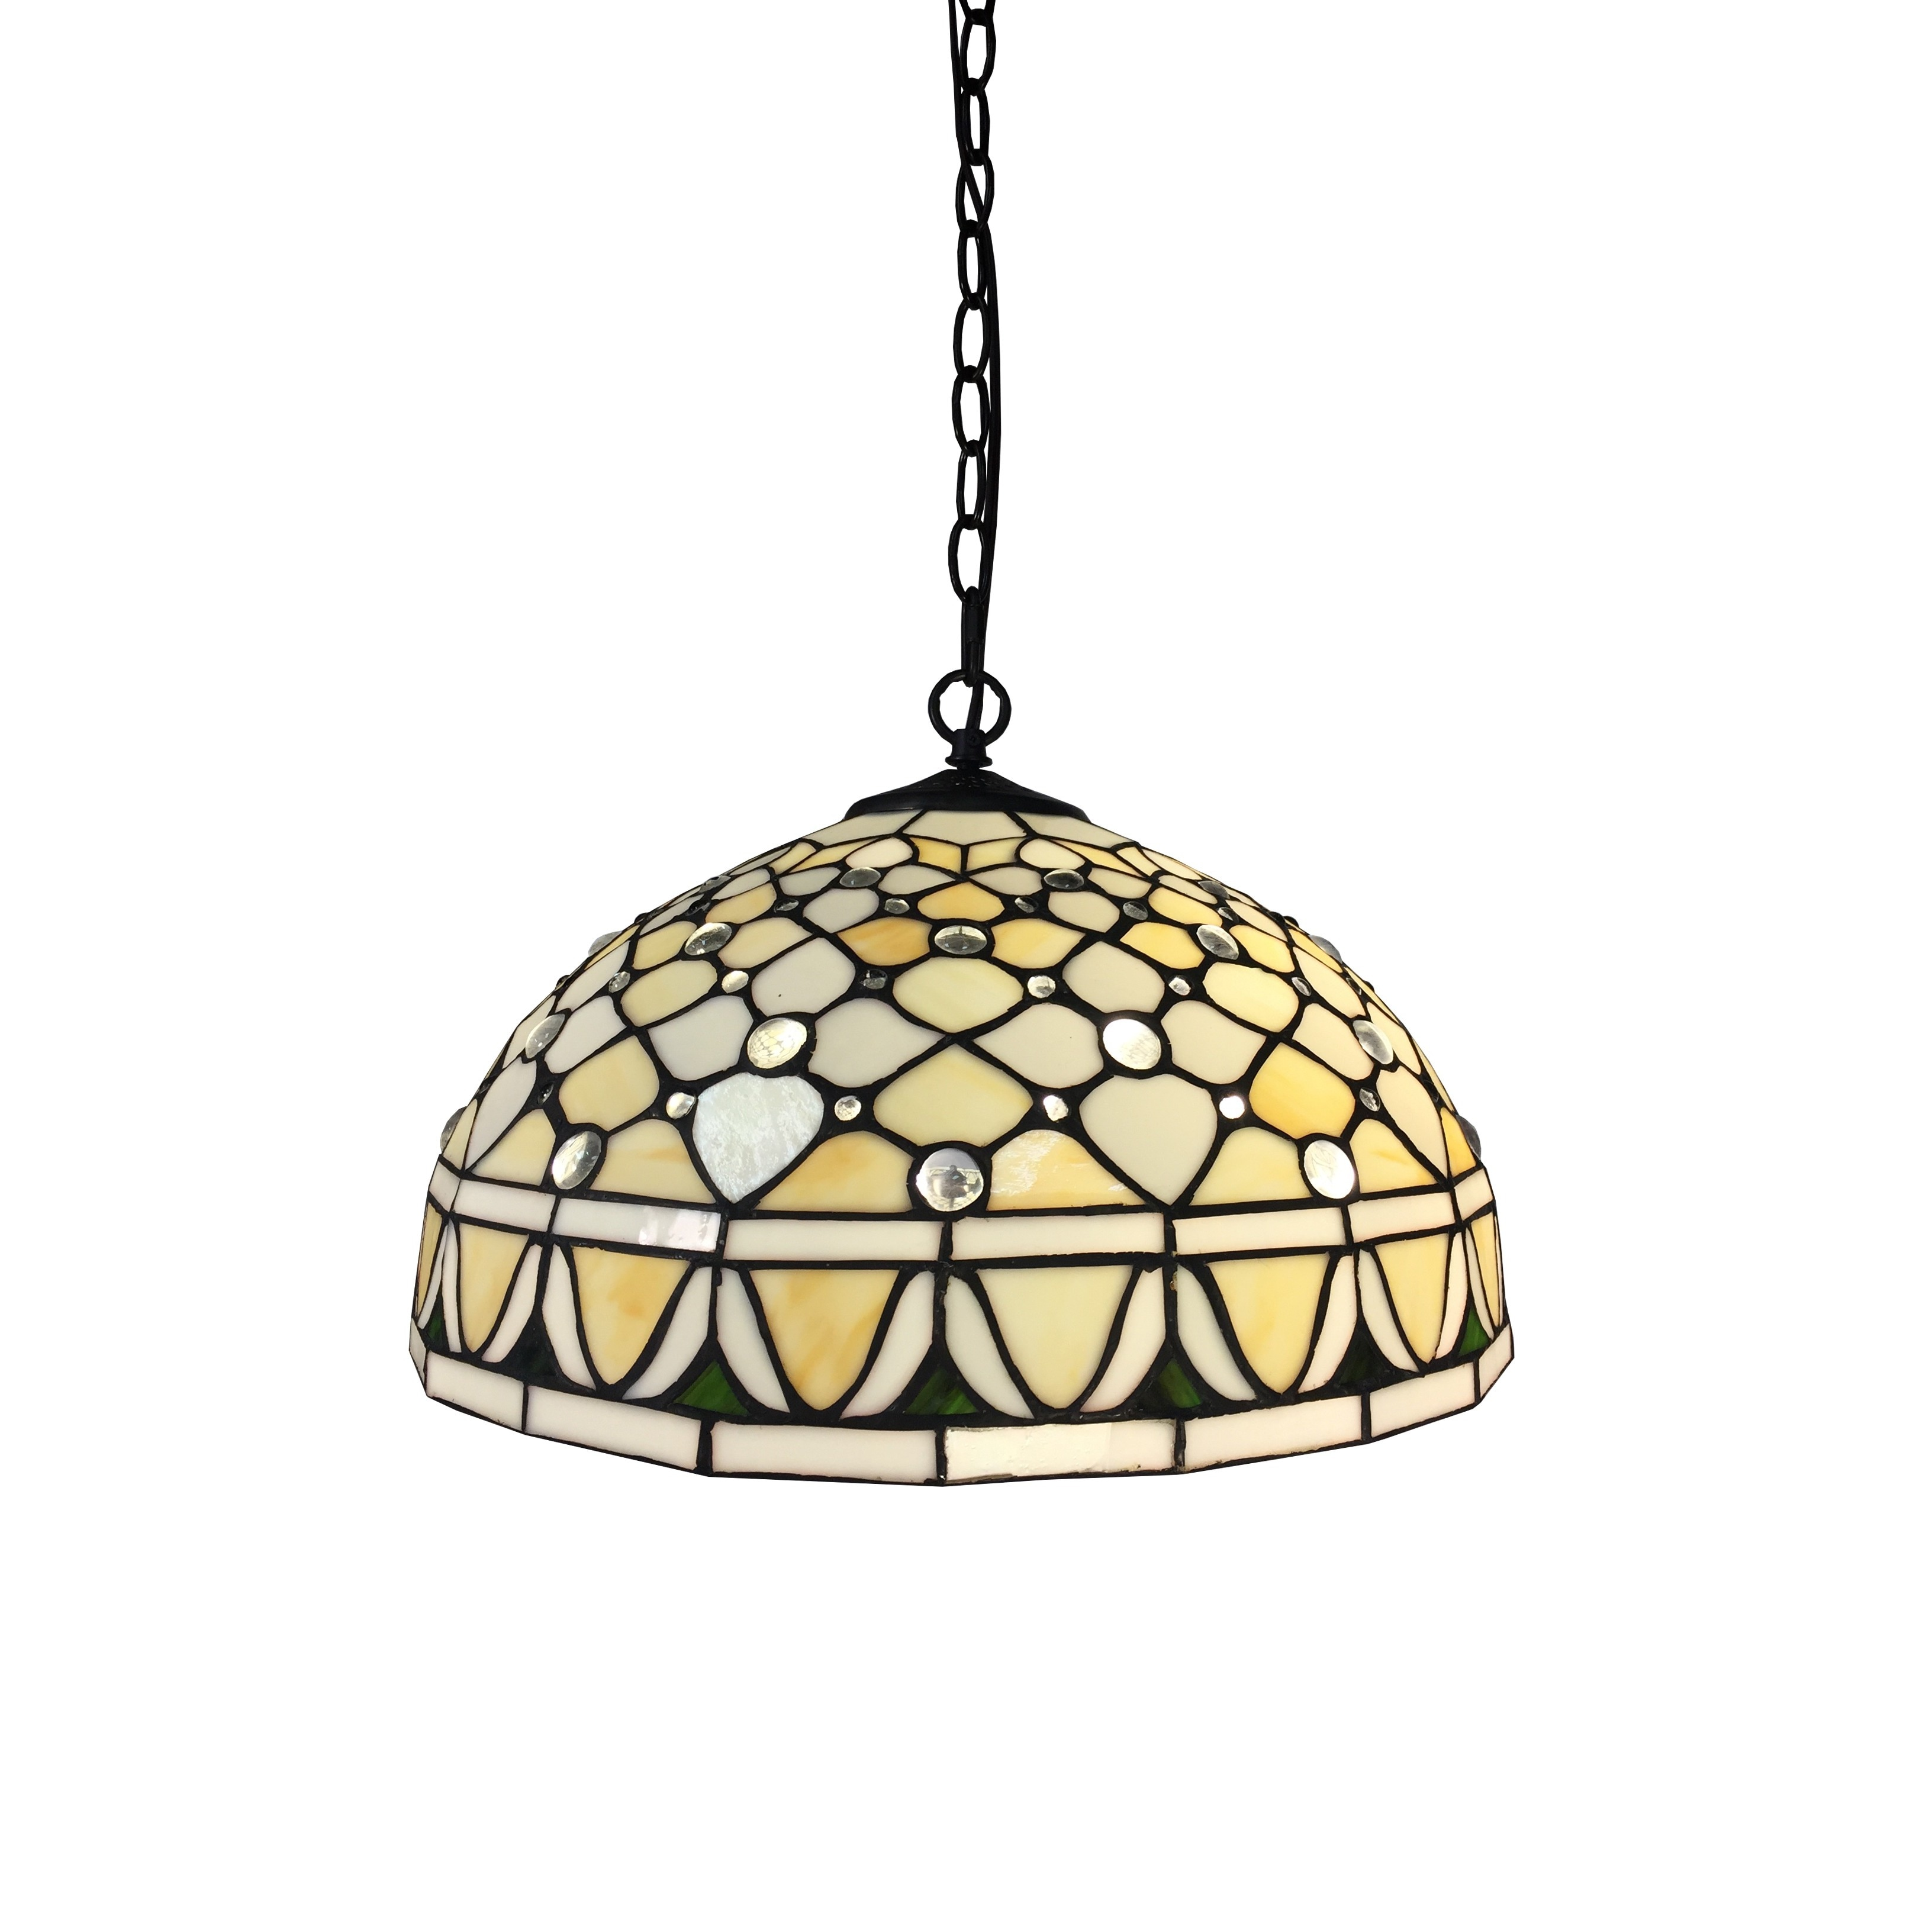 Buy tiffany style lighting online at overstock com our best lighting deals